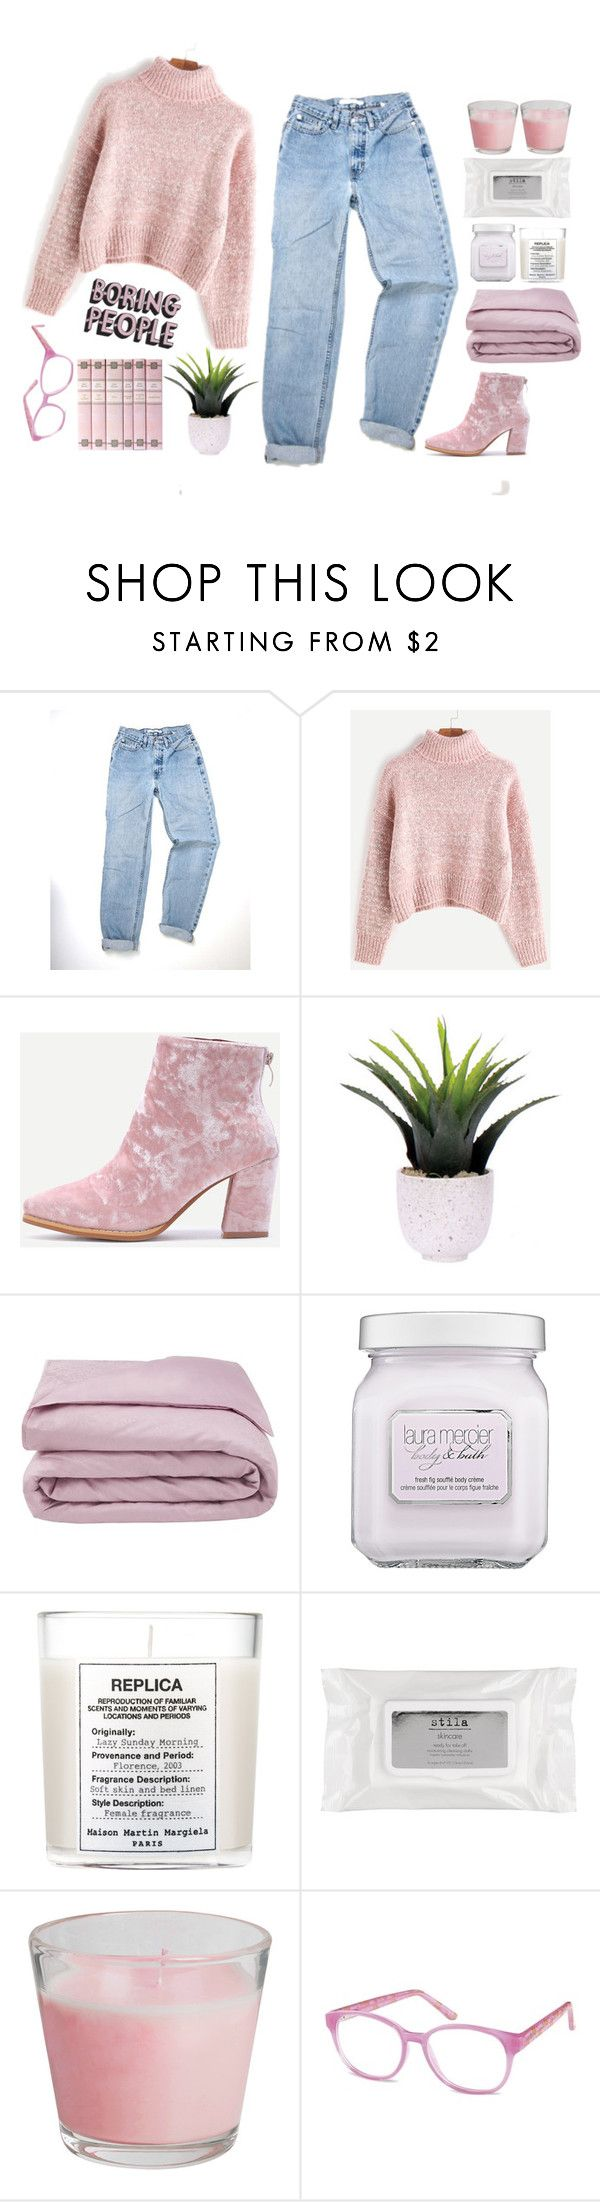 """""""#visionmarketplace"""" by credentovideos ❤ liked on Polyvore featuring Lux-Art Silks, Frette, Laura Mercier, Maison Margiela and Stila"""